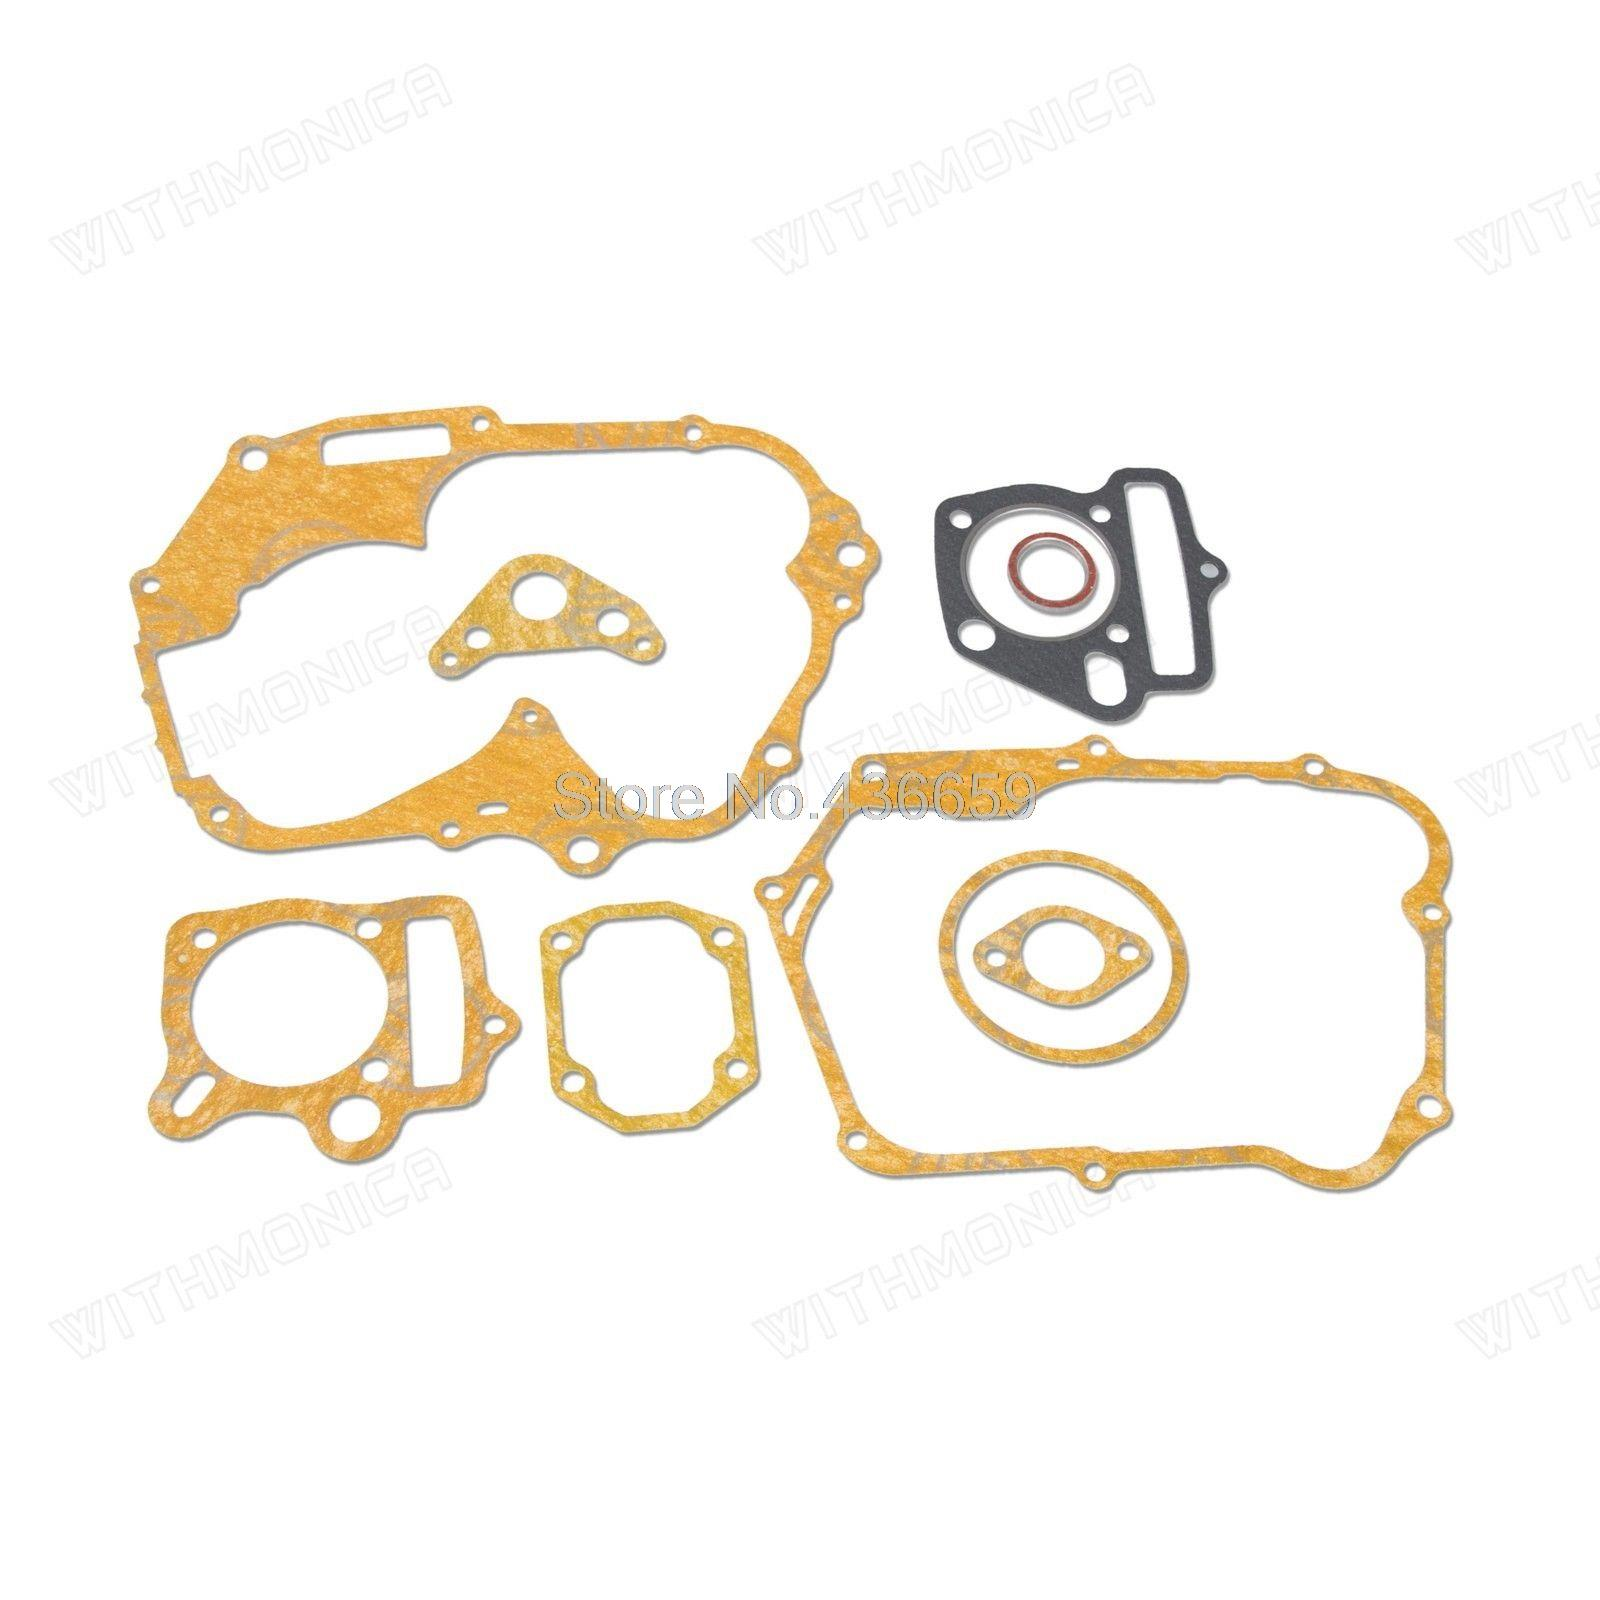 Gasket Set 125CC <font><b>ENGINE</b></font> DIRT BIKE SSR SDG <font><b>LIFAN</b></font> <font><b>110CC</b></font> 125CC 138CC image